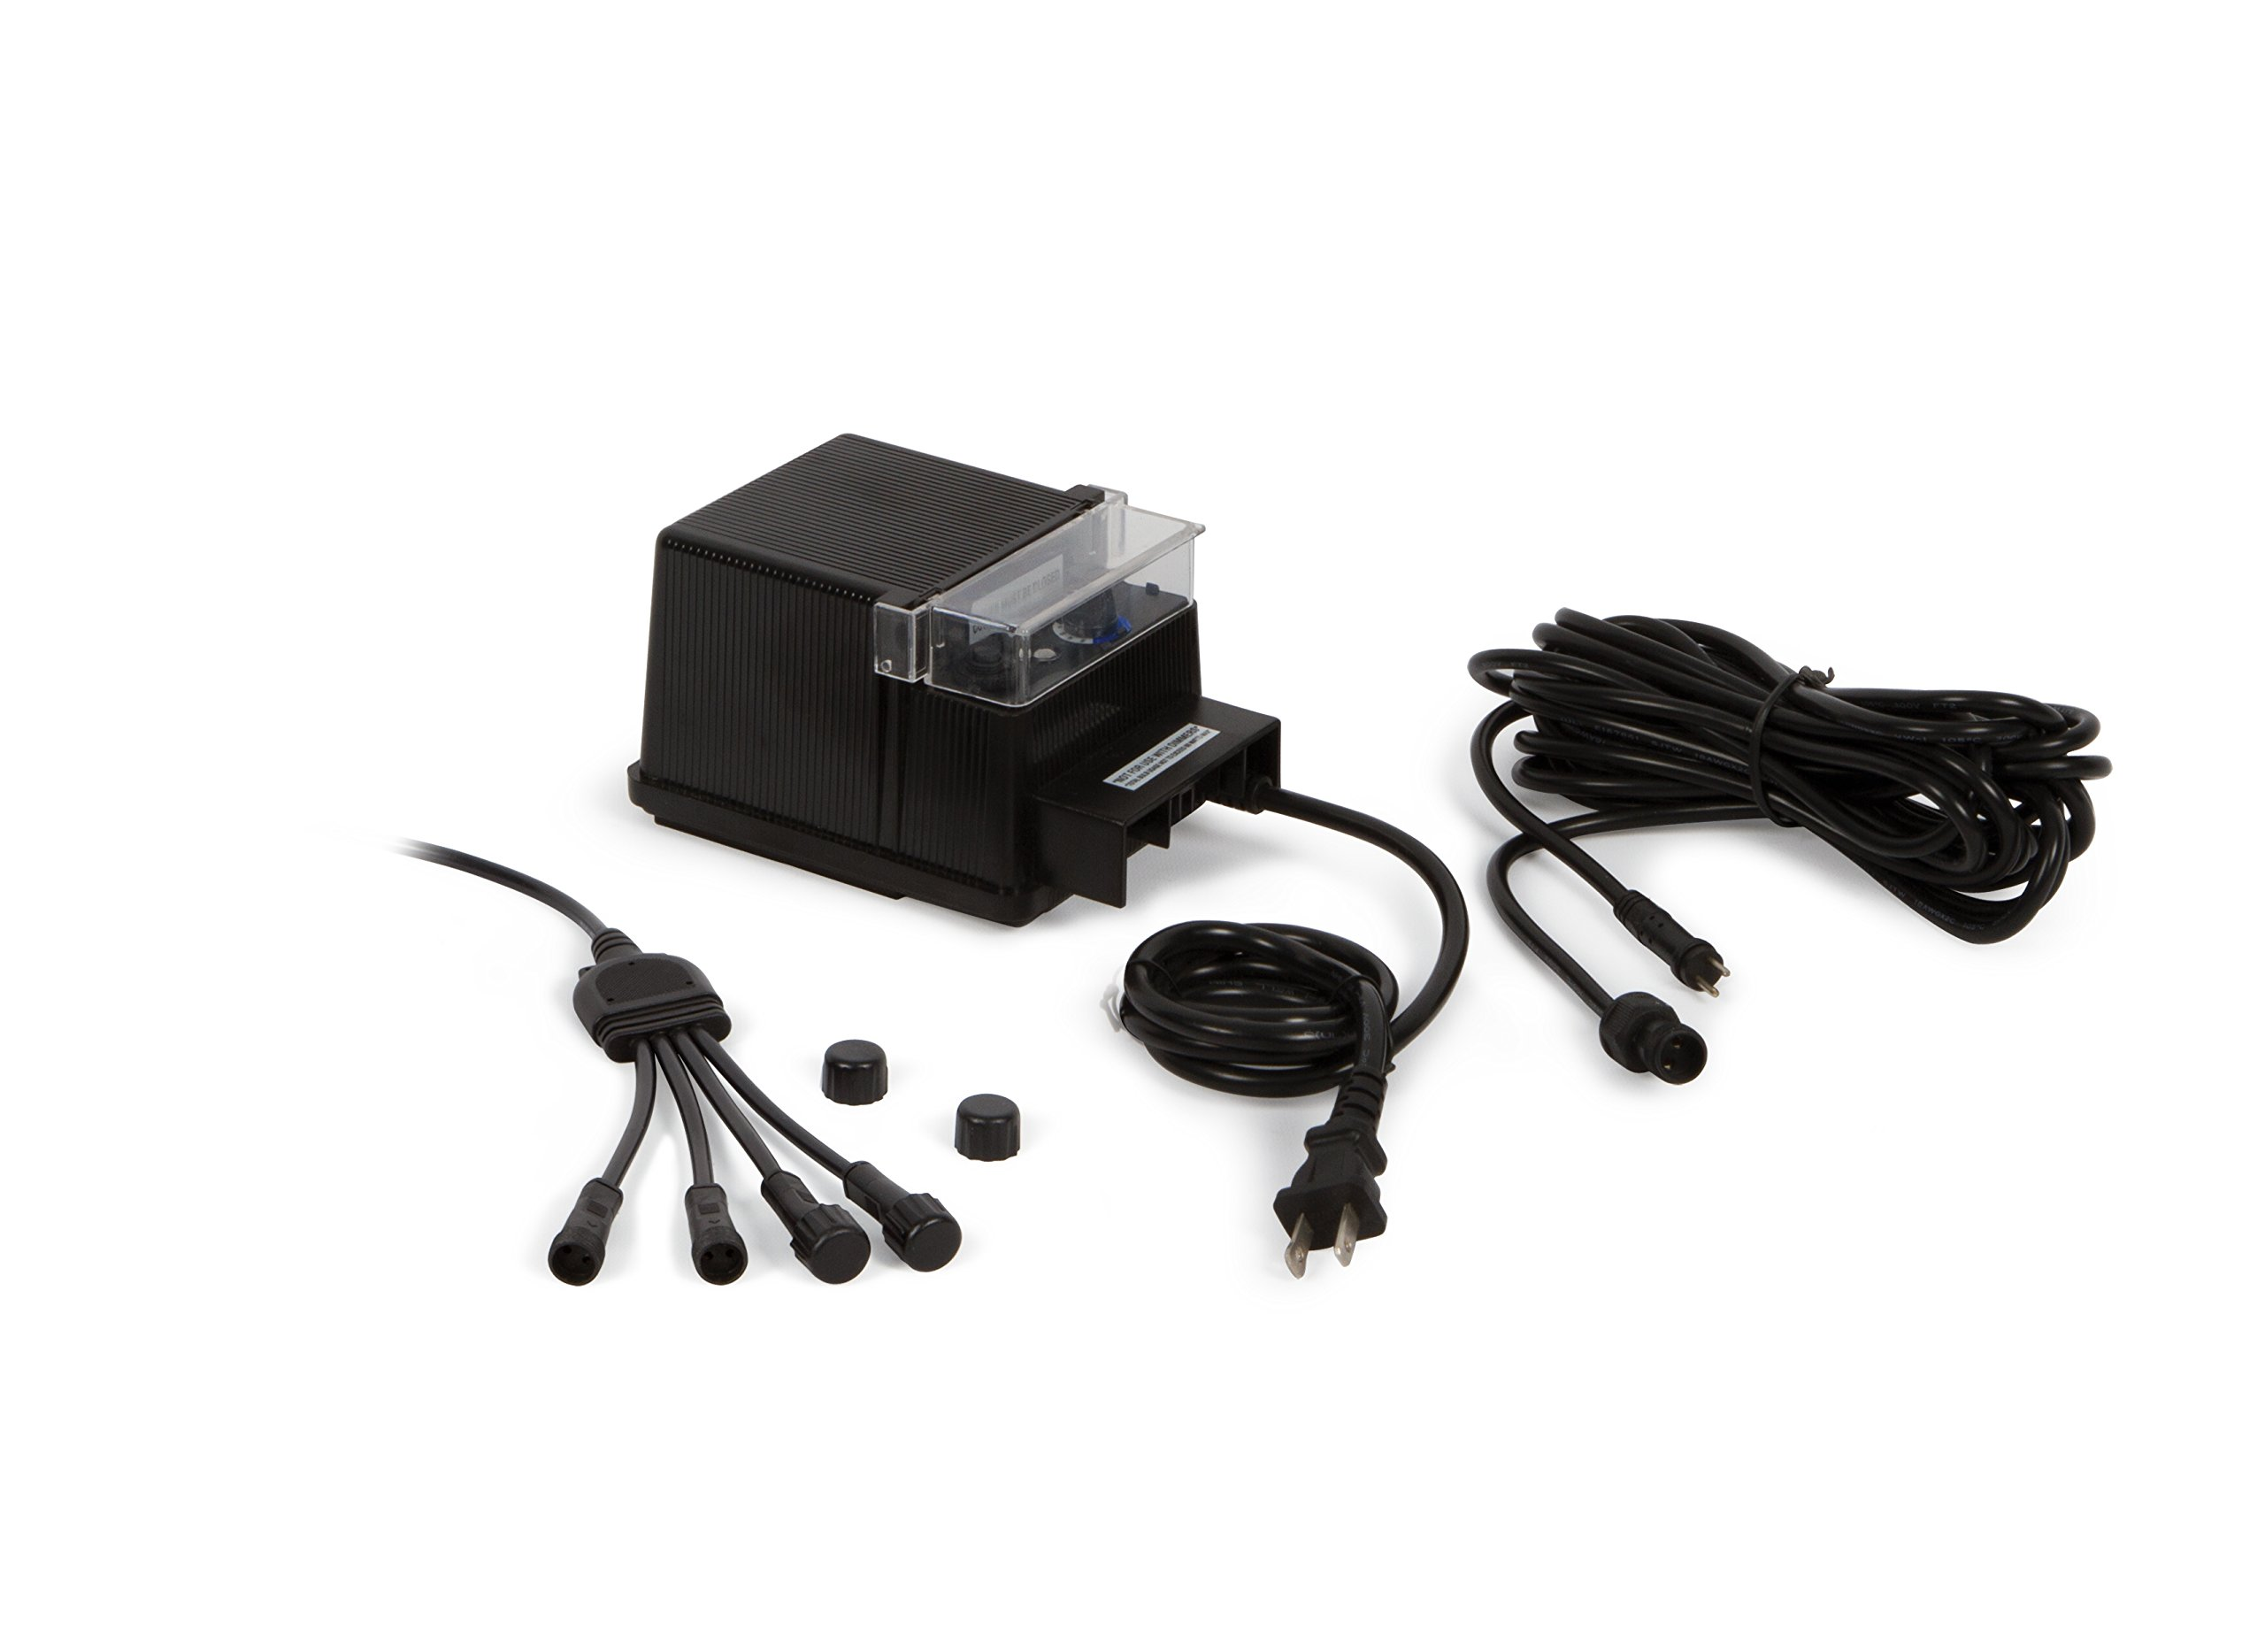 Atlantic Water Gardens 10-way Wiring Kit for Warm White Lighting, Includes 88-watt Transformer